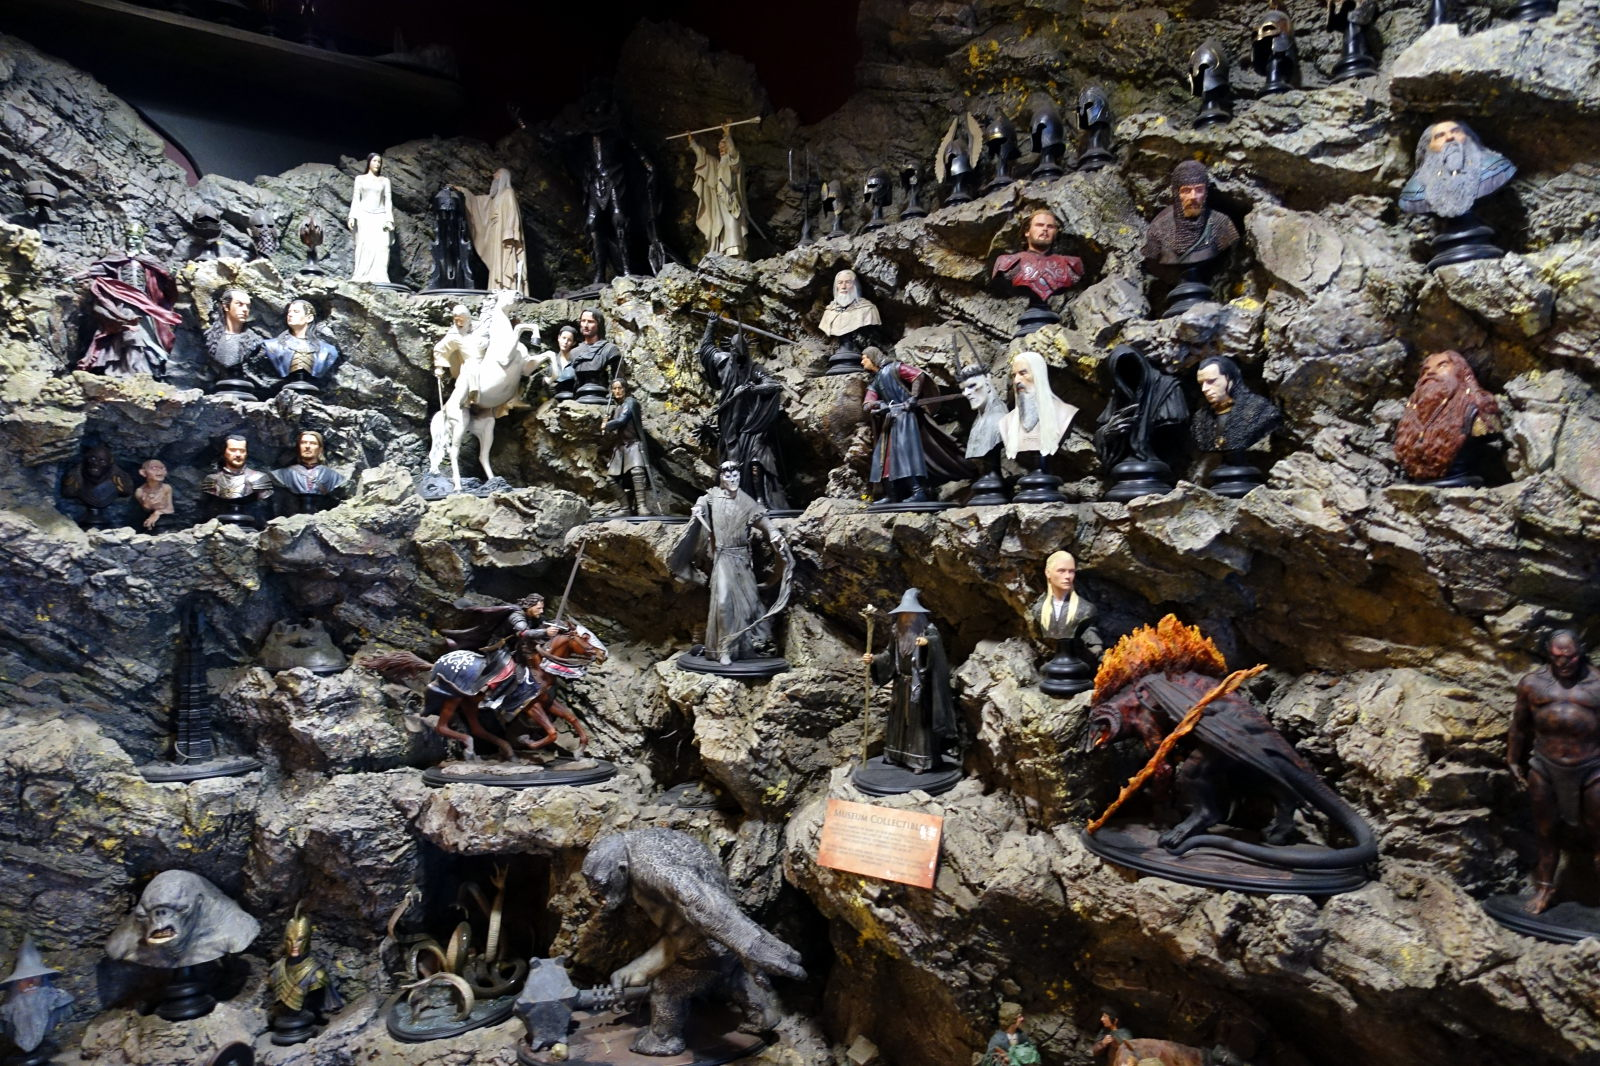 Figures from The Lord of the Rings and The Hobbit  presented on a rock like shelves.